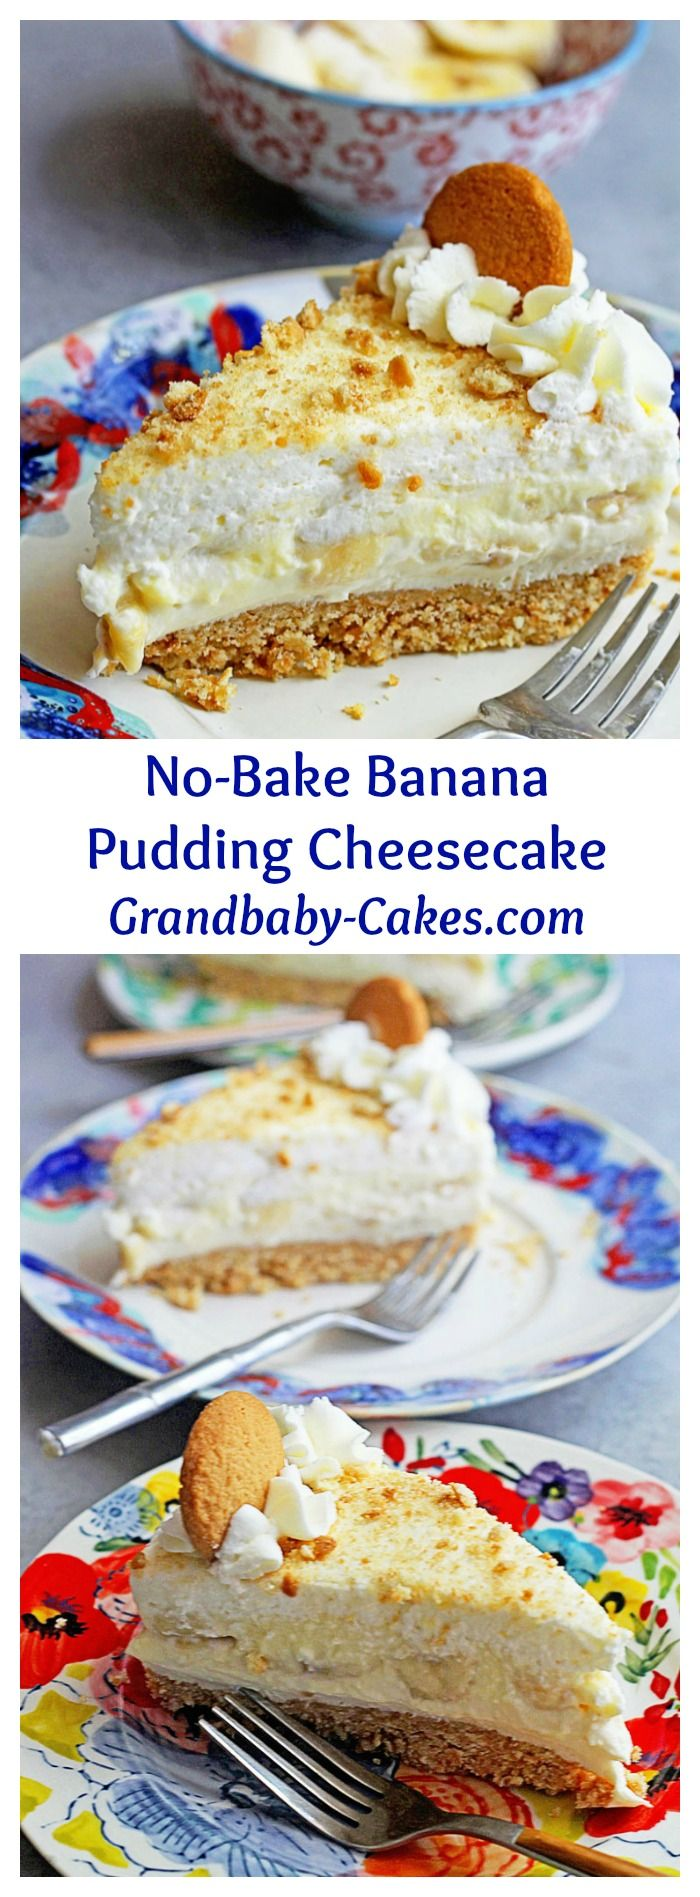 785 Best Images About Grandbaby Cakes On Pinterest